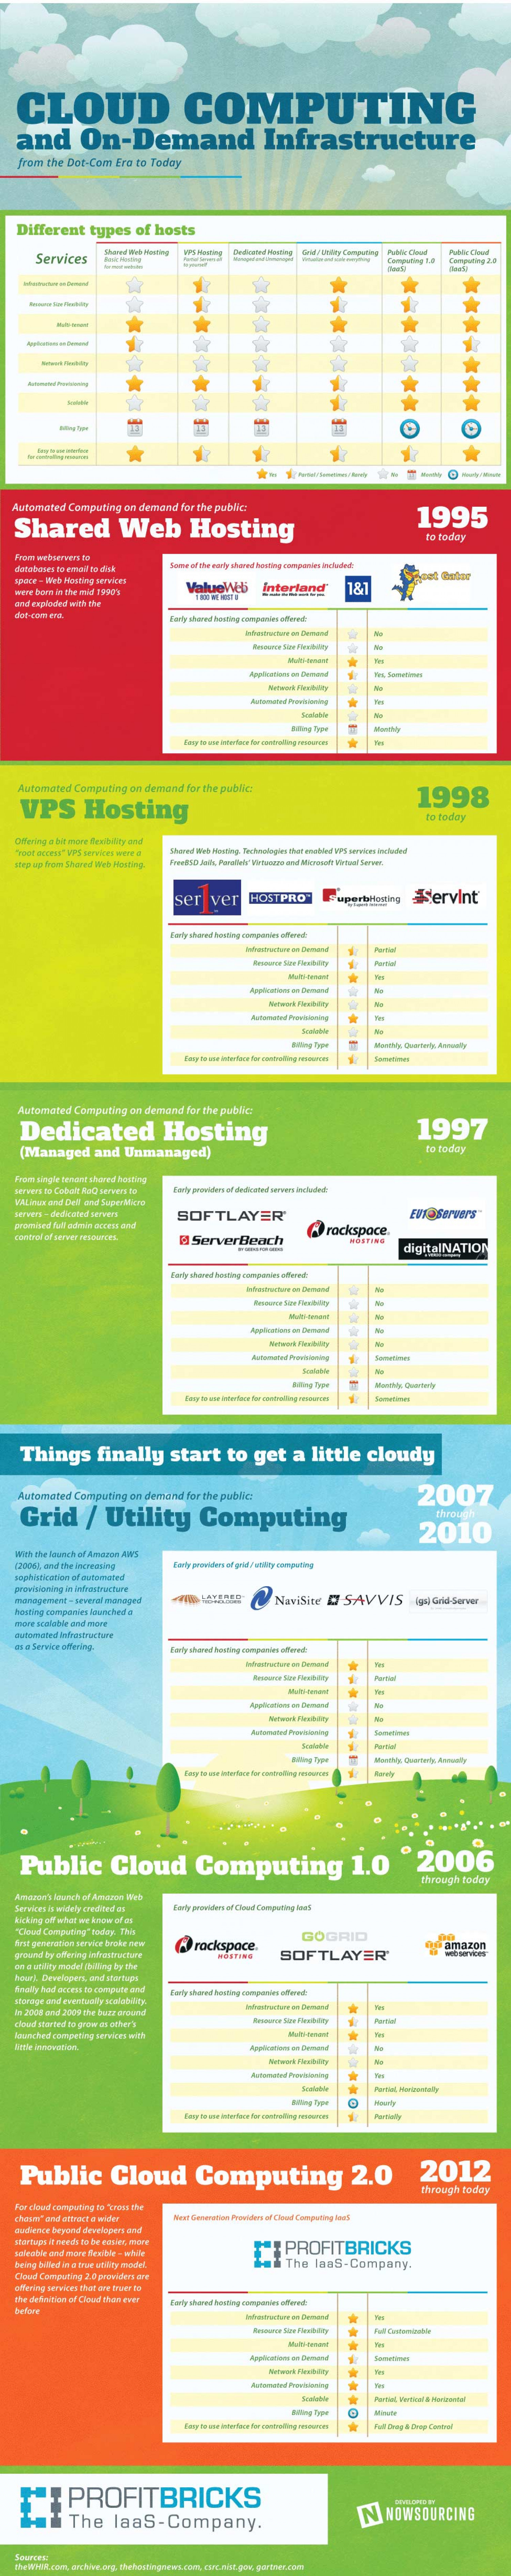 Cloud Computing – From The Inception To Today Infographic